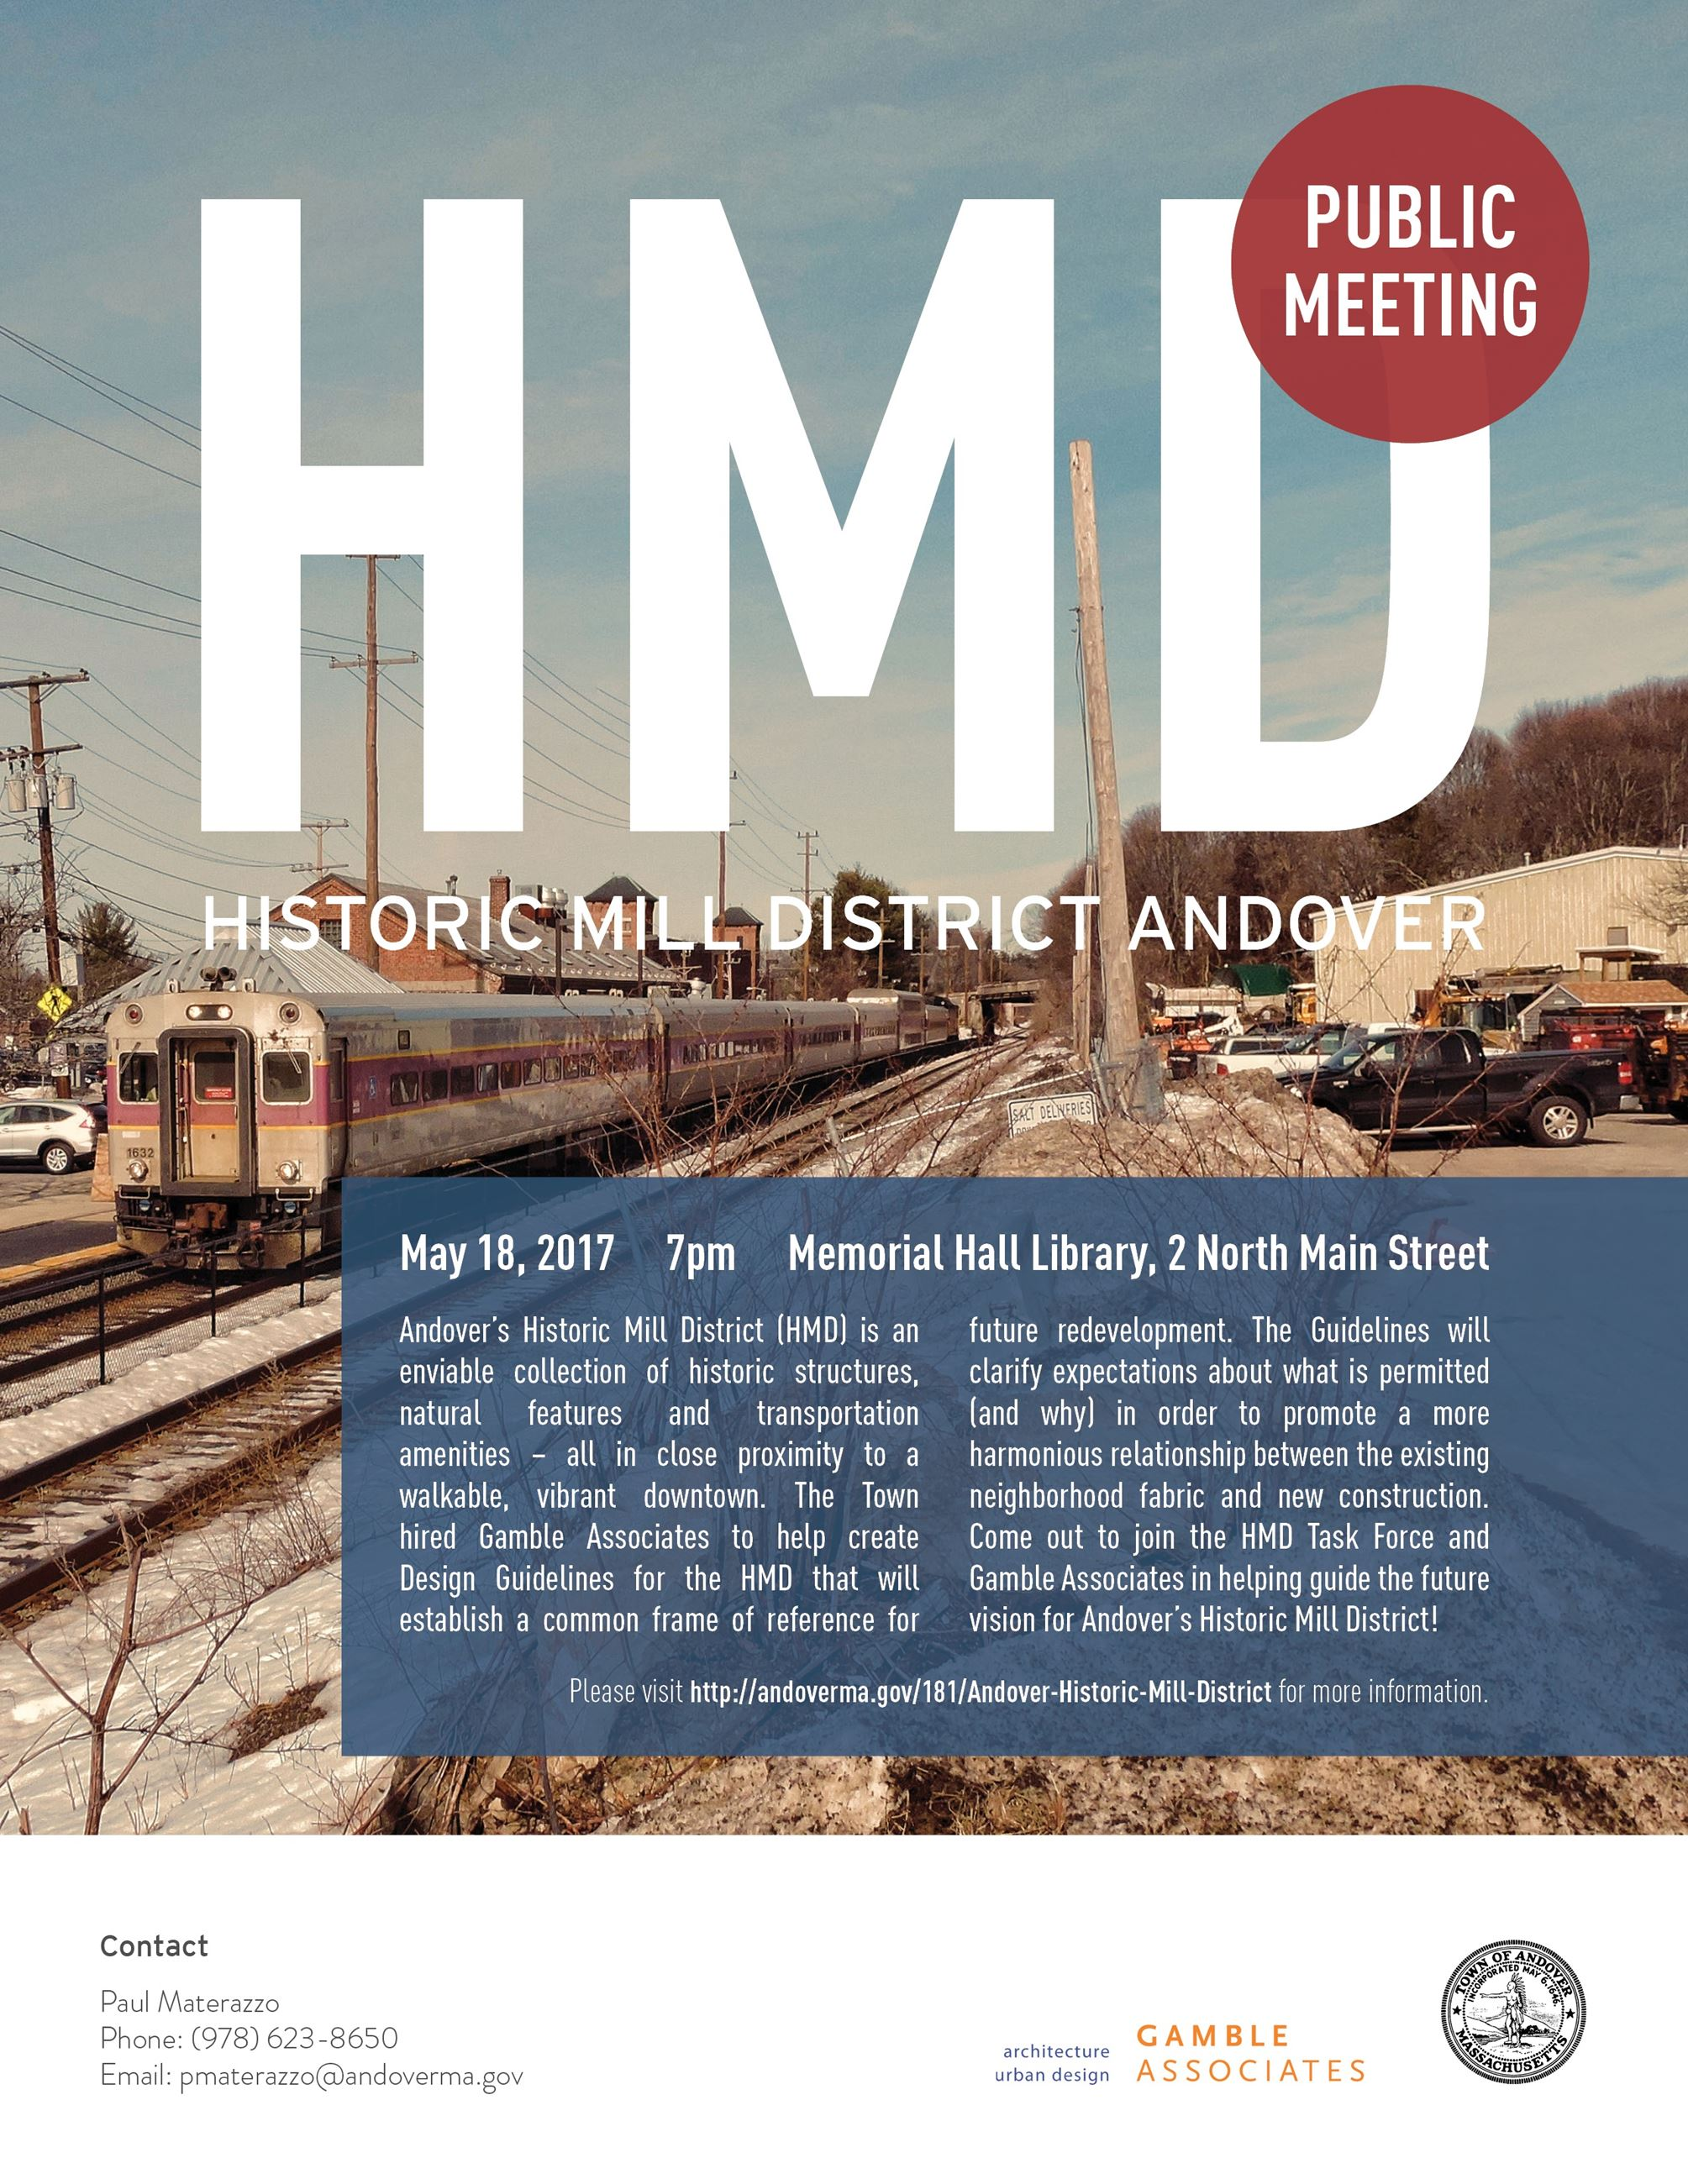 Historic Mill District Public Meeting May 18 2017 7PM at Memorial Hall Library